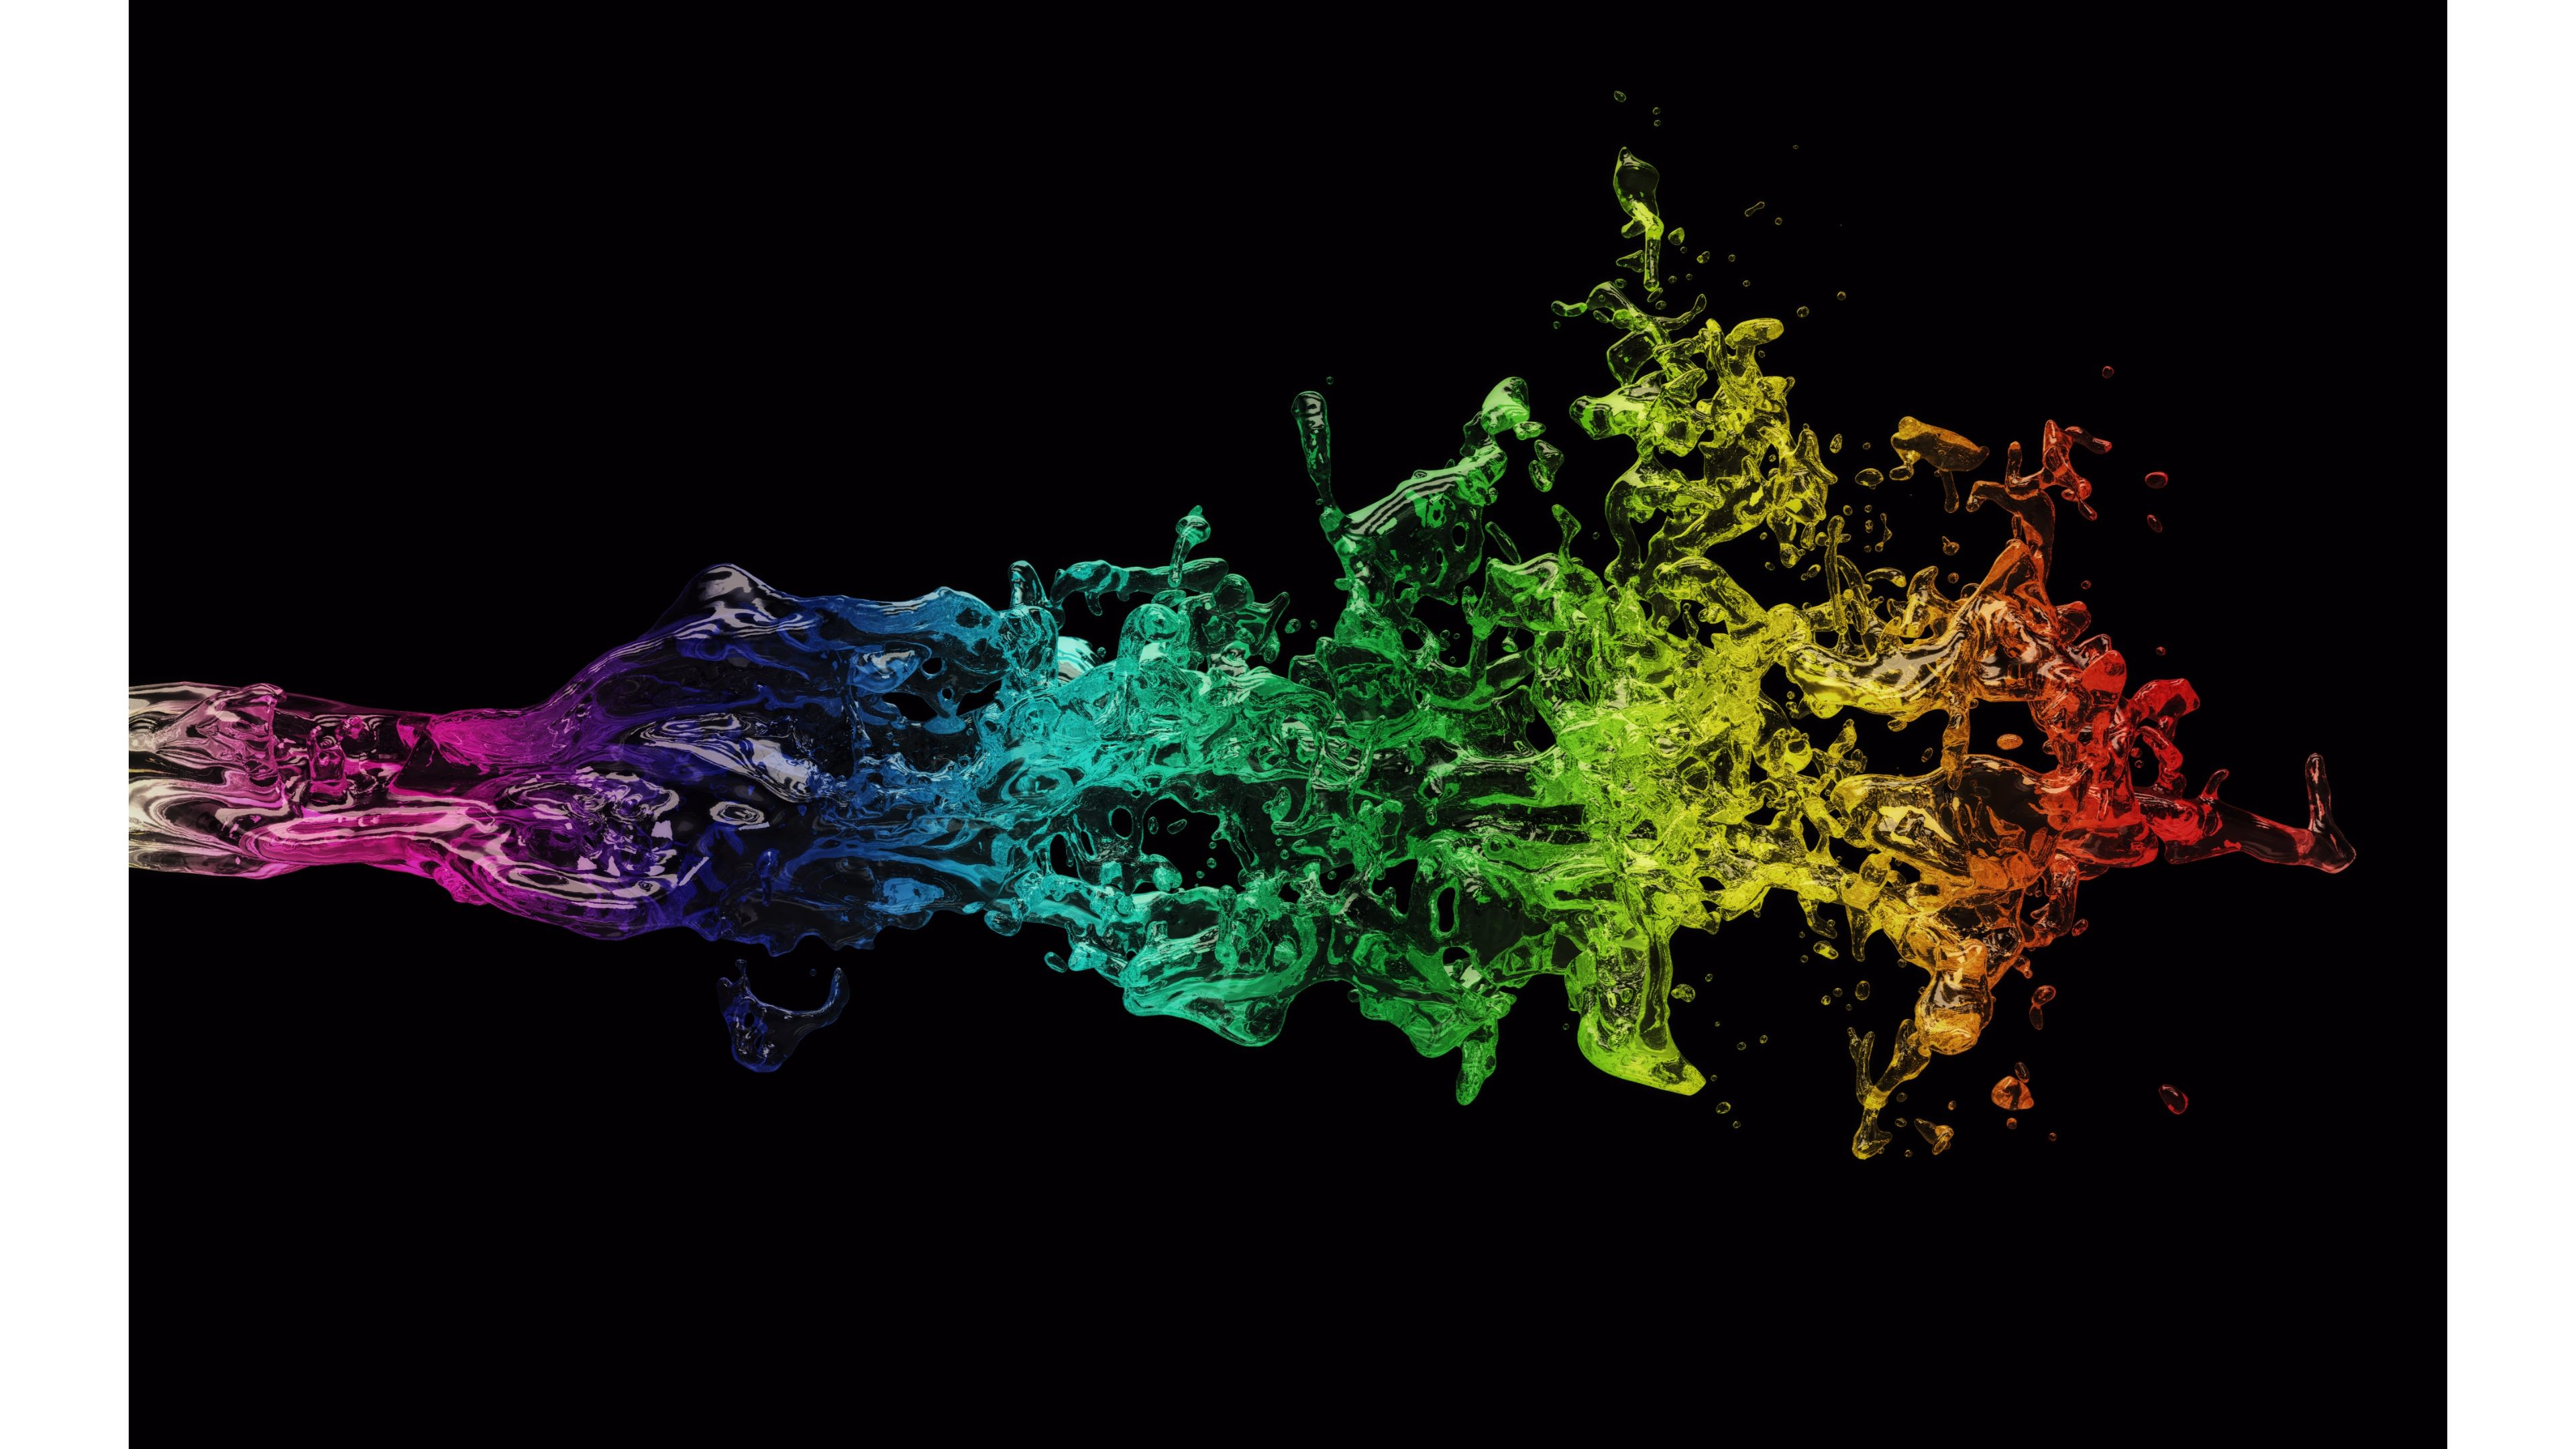 Res: 3840x2160, Splash of Color Abstract 4K Wallpaper